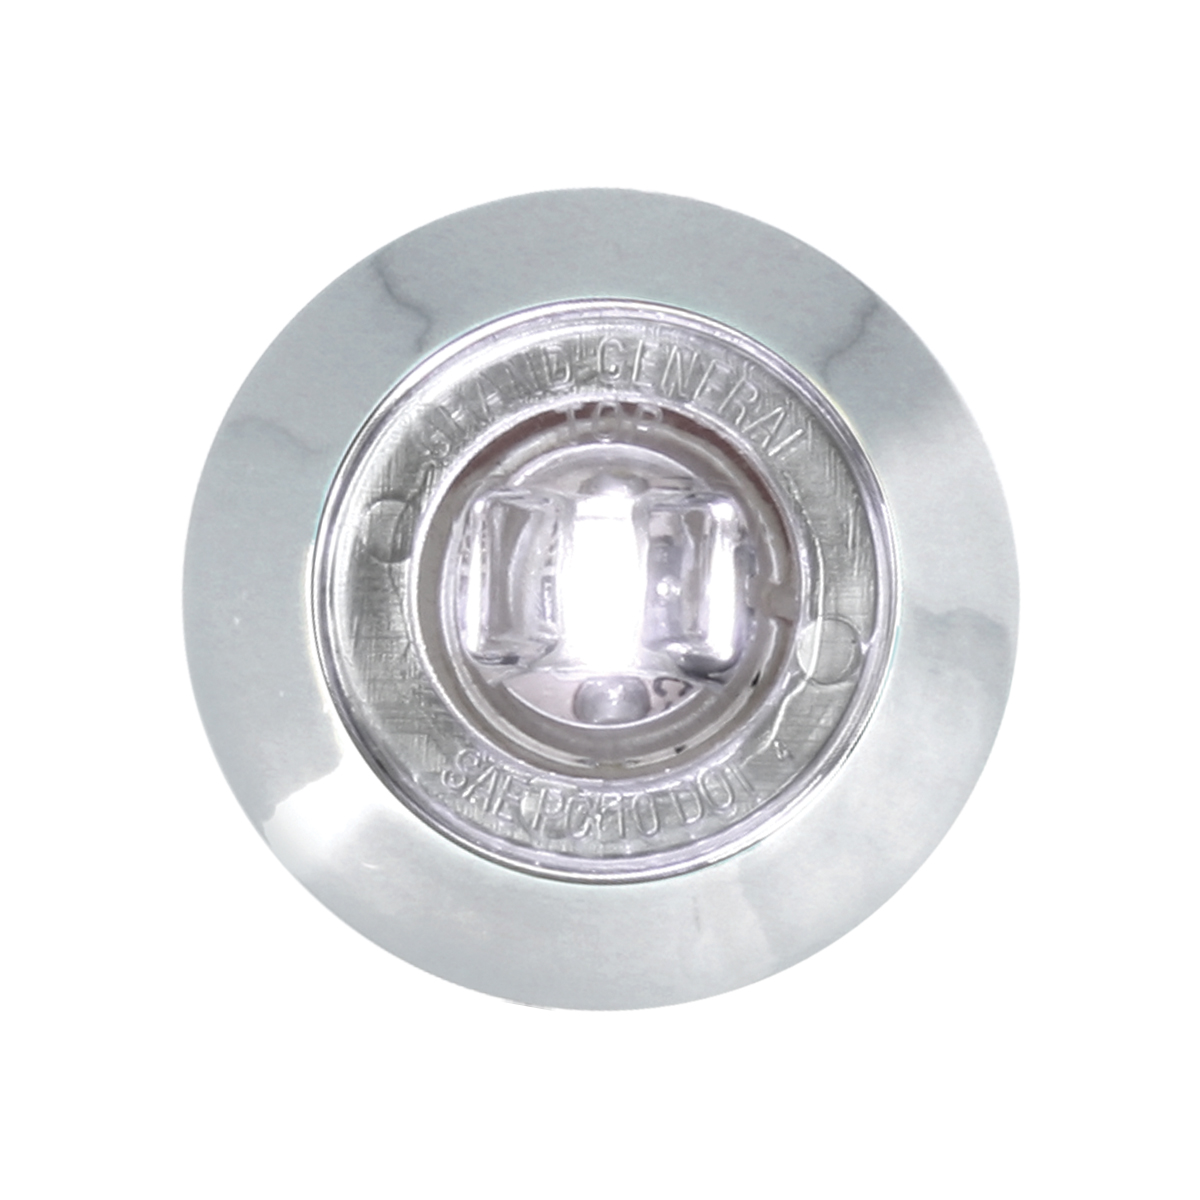 """75224 1-1/4"""" Dia. Dual Function LED Light with Chrome Plastic Bezel and Nut"""